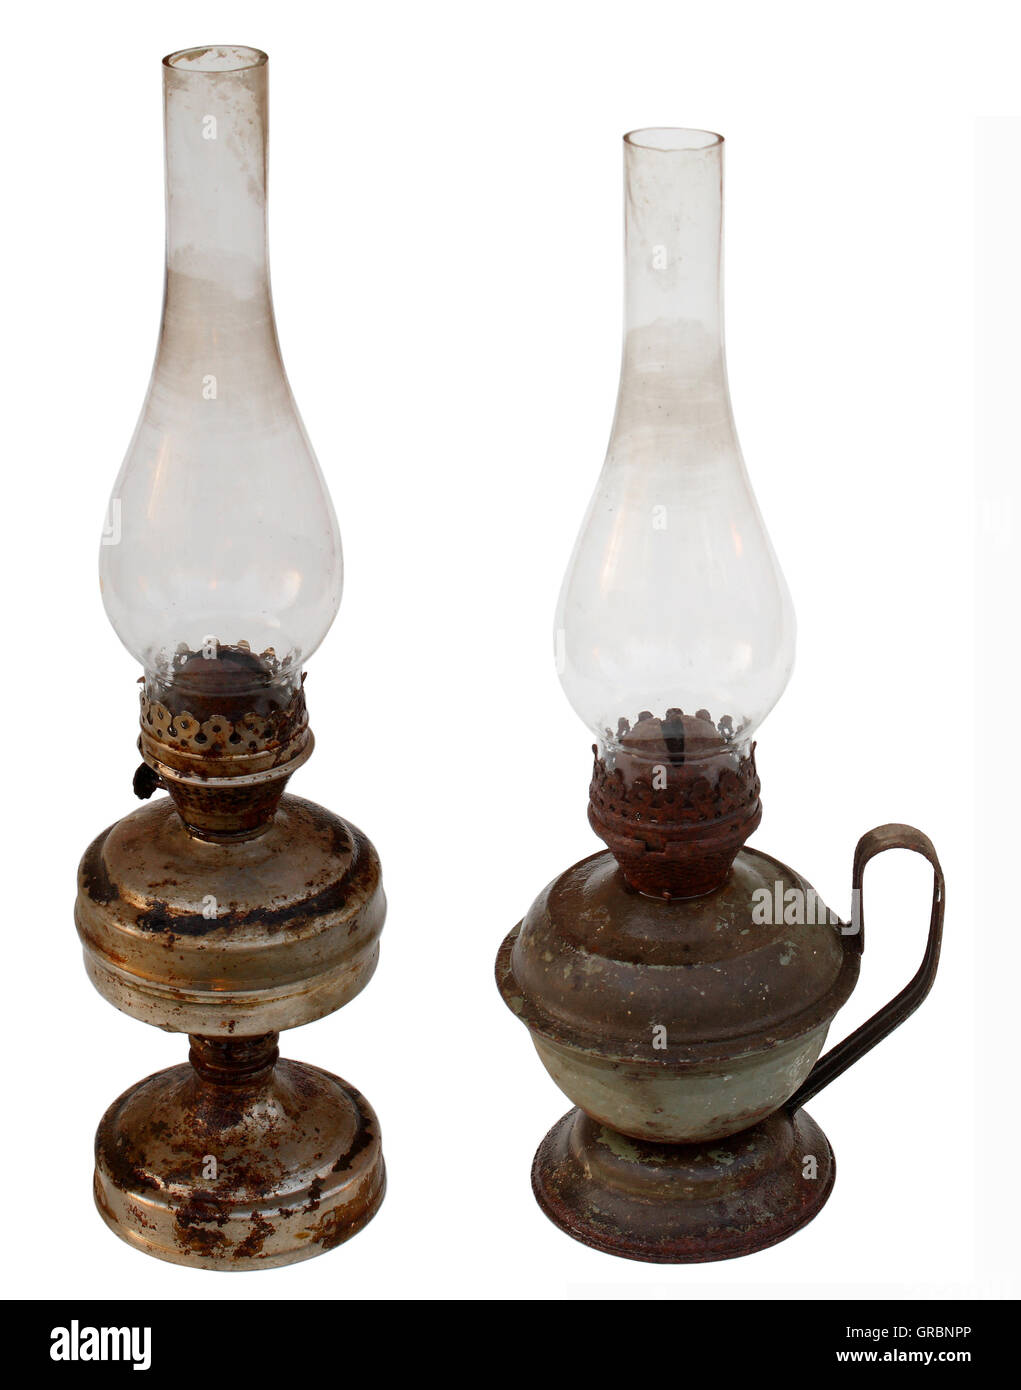 antique kerosene lamp with a glass bulb old Stock Photo